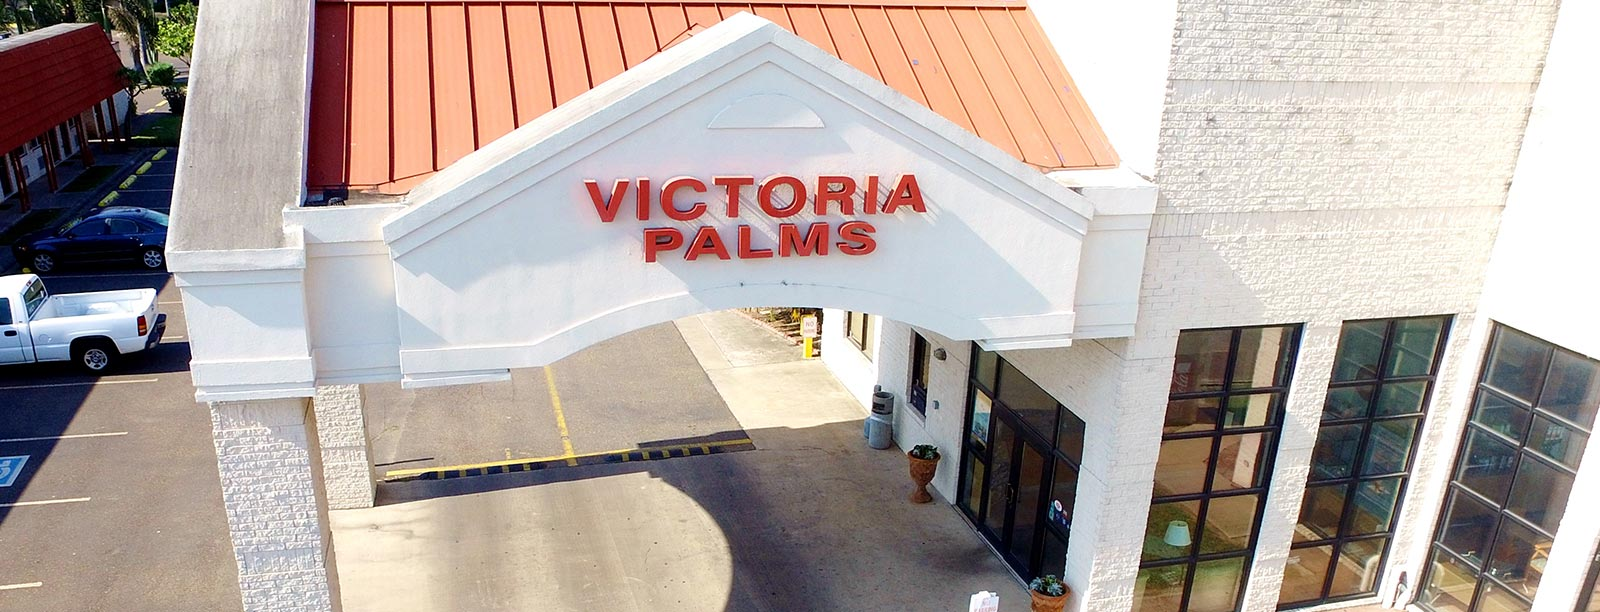 Victoria Palms Inn & Suites, Donna Services